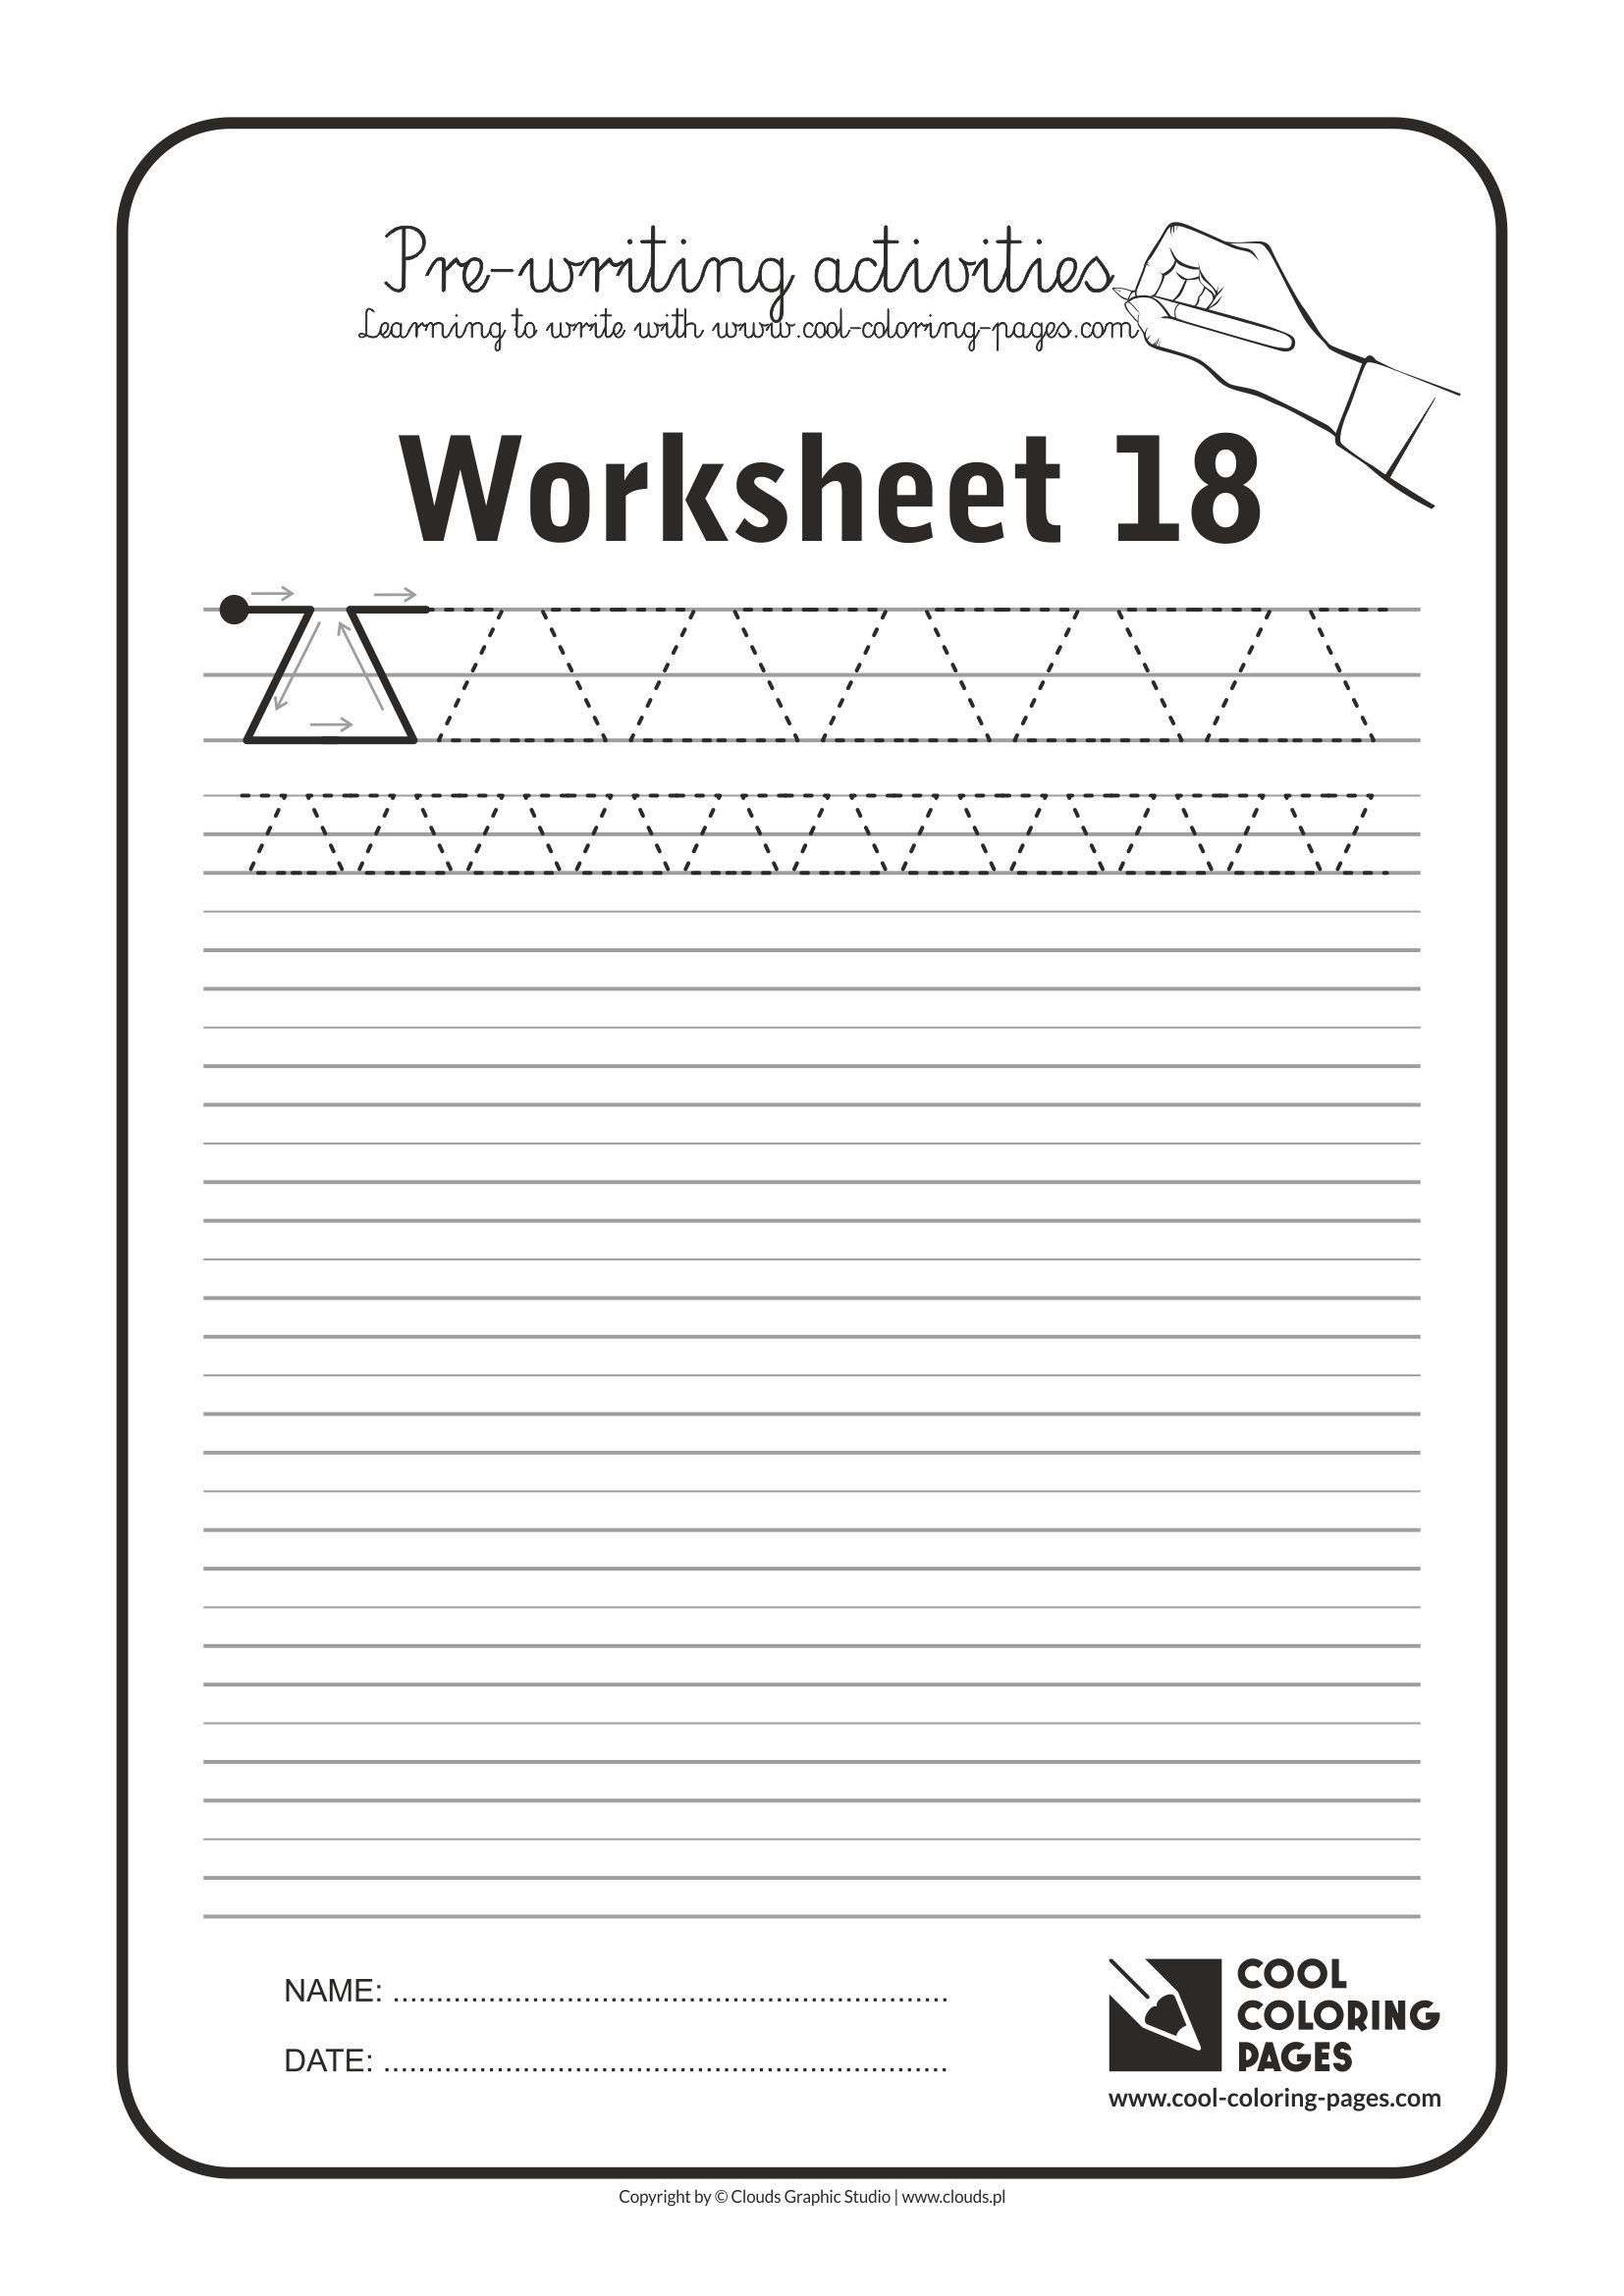 Cool Coloring Pages / Pre-writing activities / Worksheet no.18